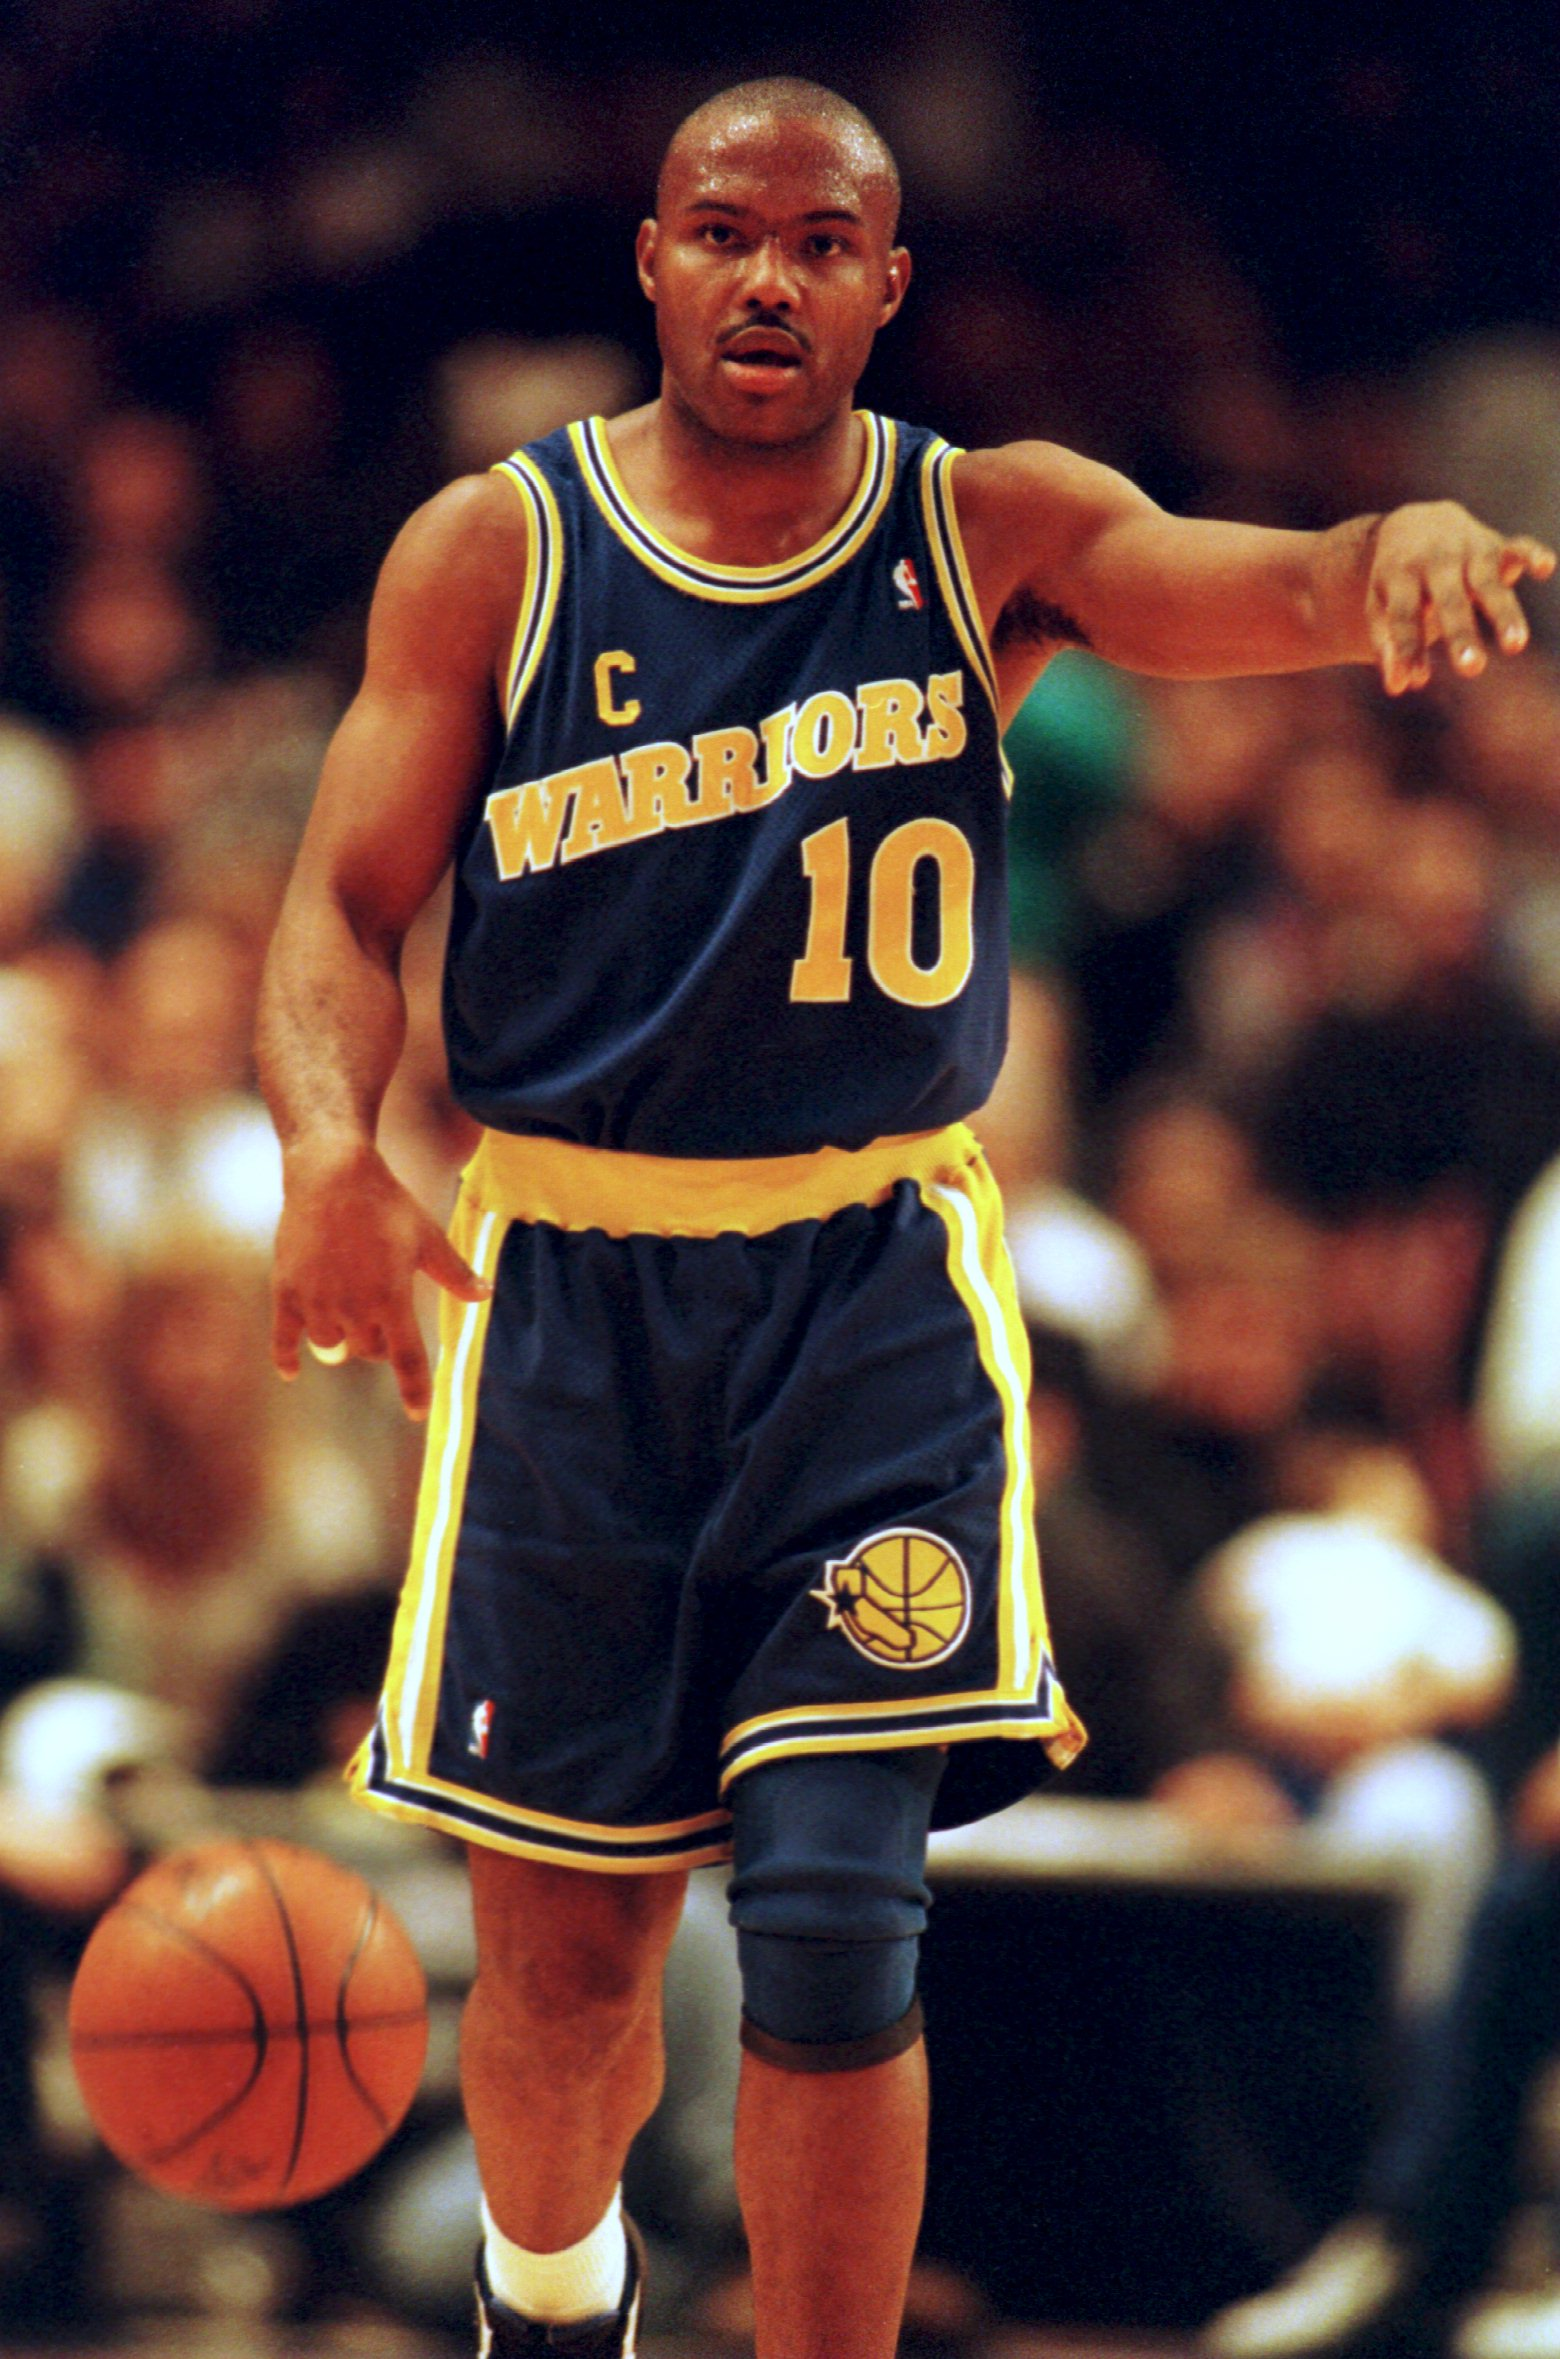 31 Jan 1995: Forward Tim Hardaway of the Golden State Warriors makes a point during their game against the New York Knicks at Madison Square Gardens in New York, New York.